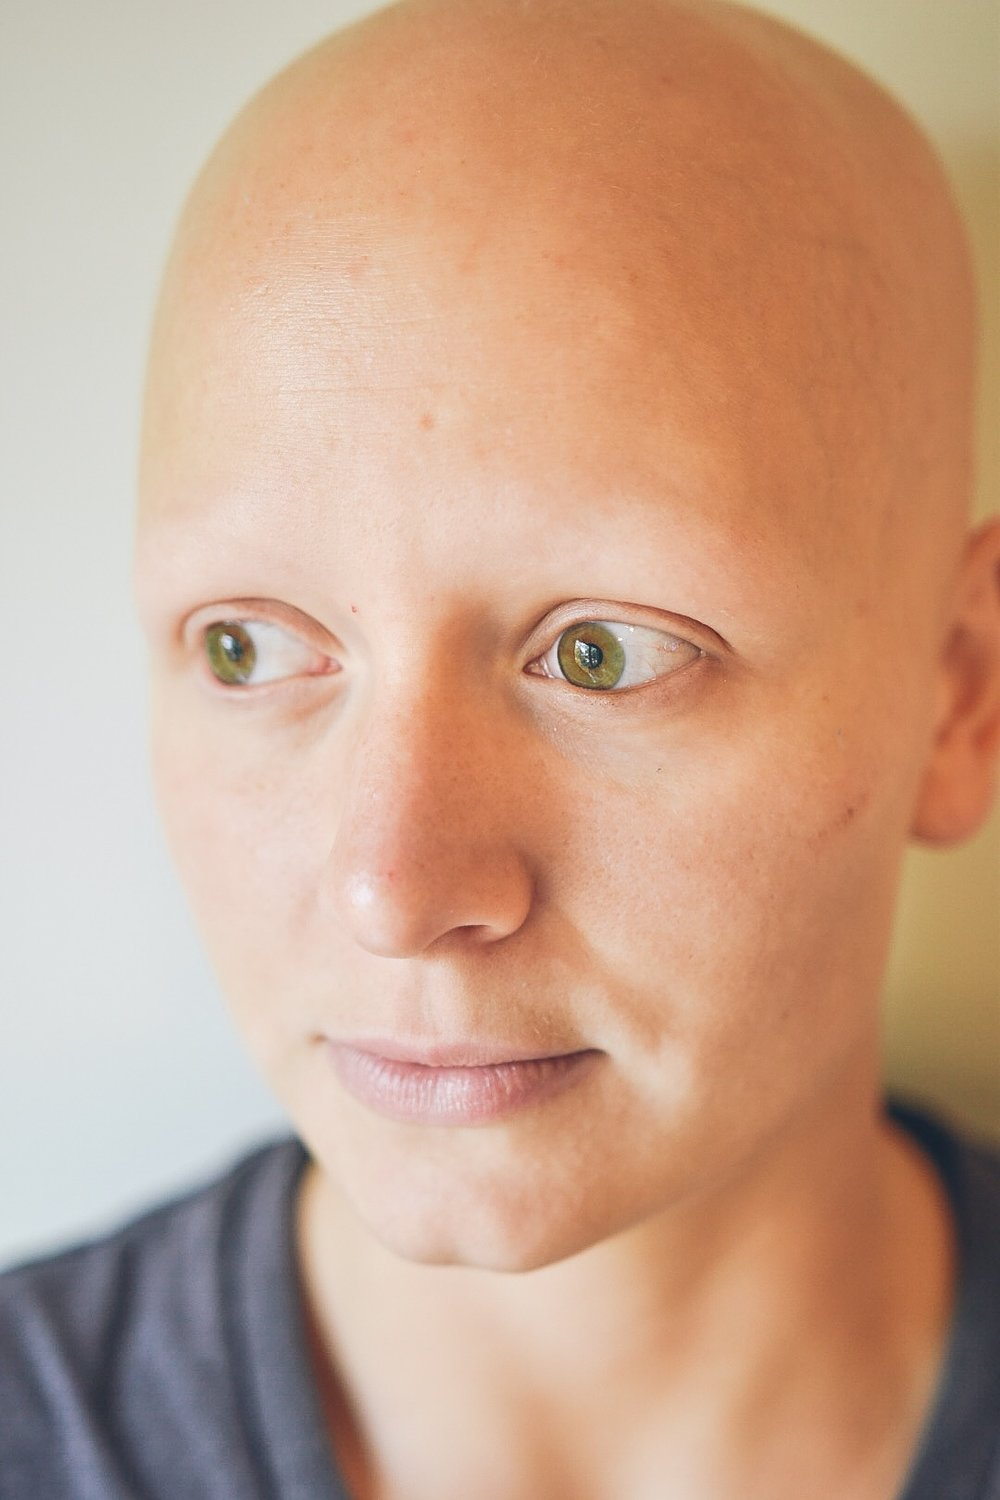 Michelle was diagnosed with alopecia at the age of 18, as she started losing hair very rapidly.